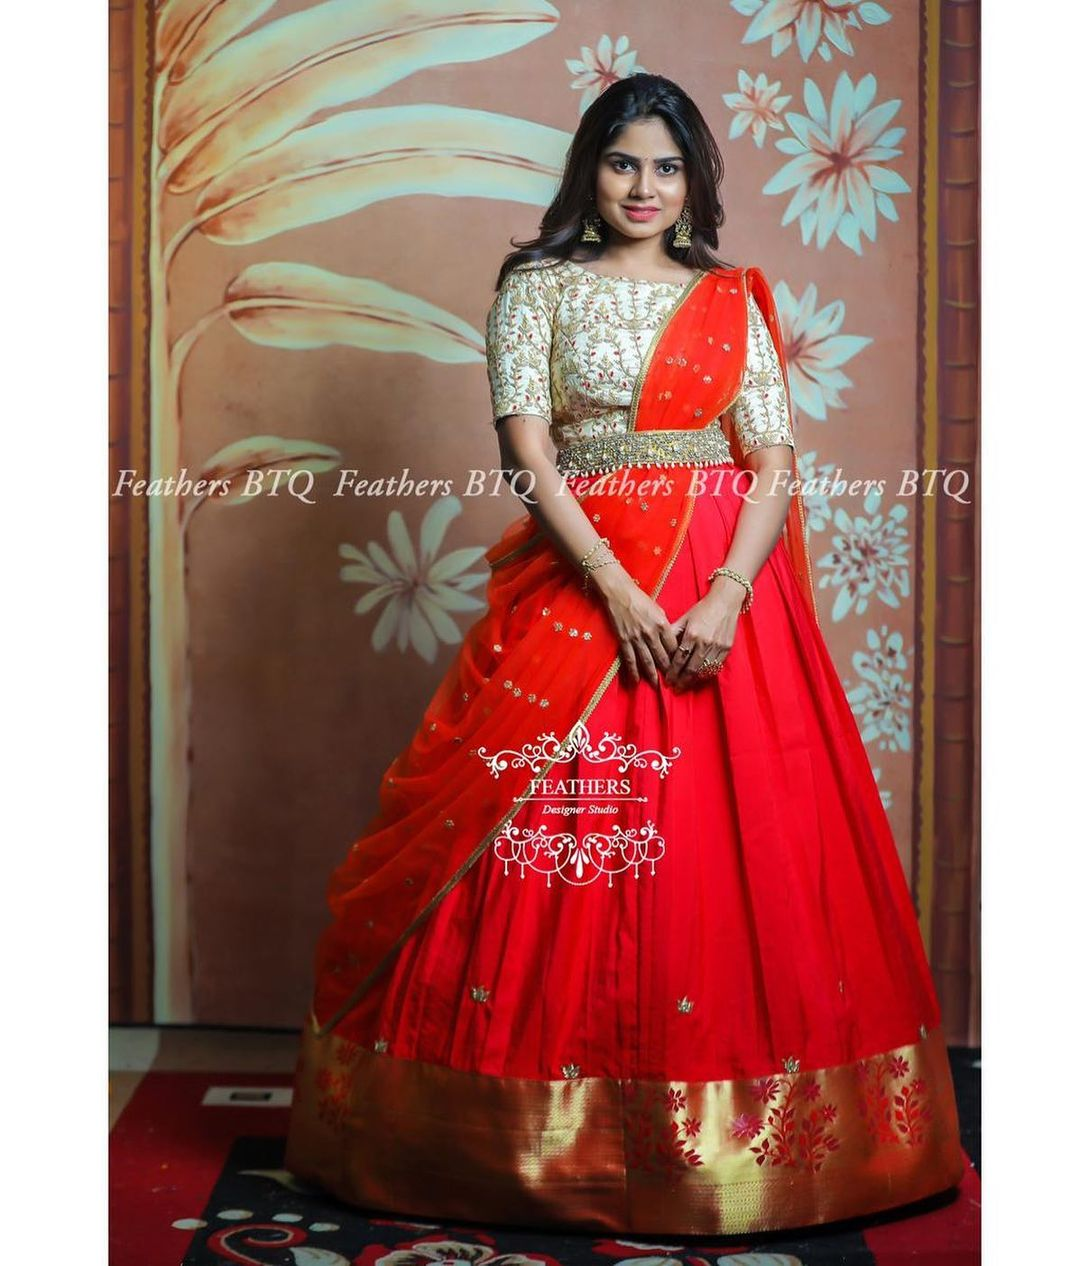 Stunning red color pattu langa voni. Blouse with hand embroidery aari work.  2021-05-15